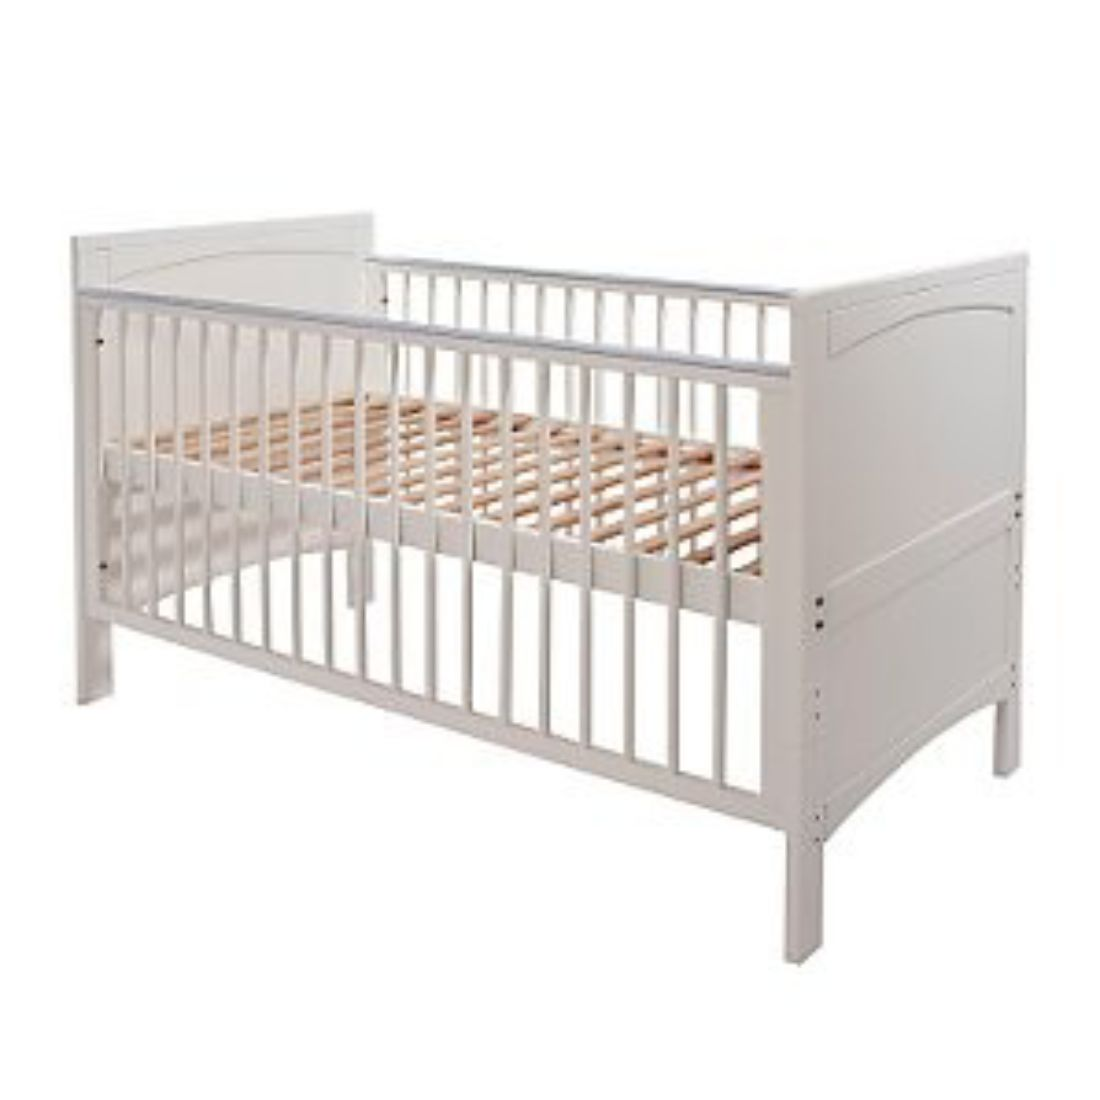 ... to fit John Lewis ALFIE cot bed - mattress size is 140 x 70 cm